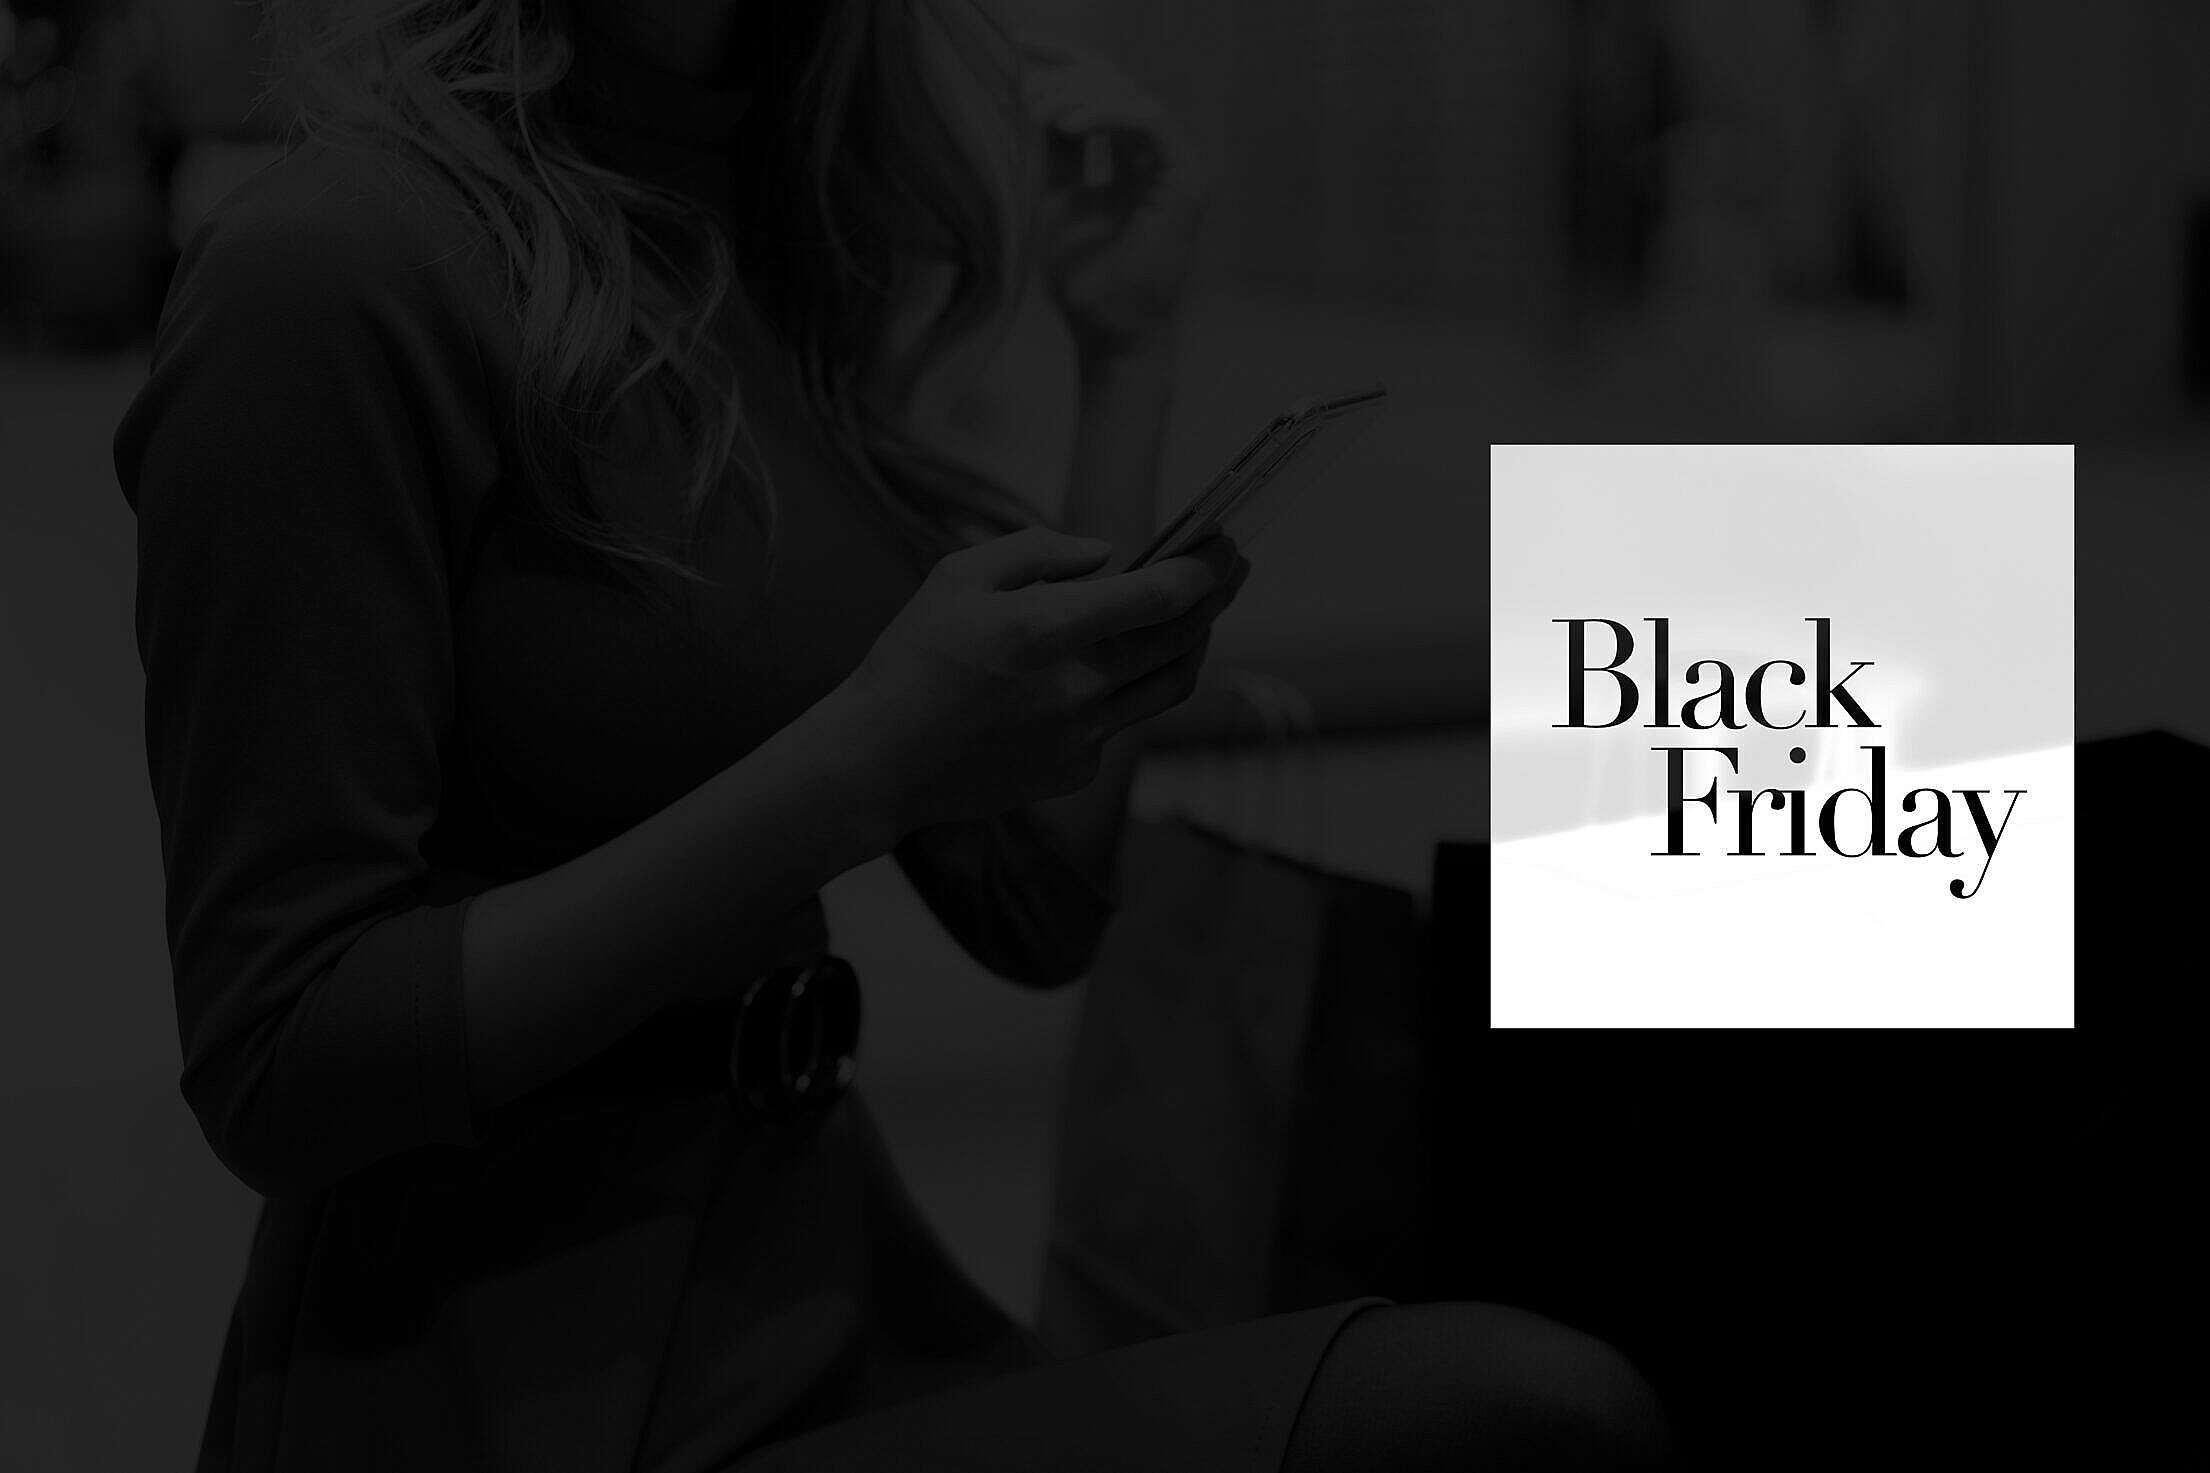 Black Friday eCommerce Luxury Visual with Space for Text Free Stock Photo